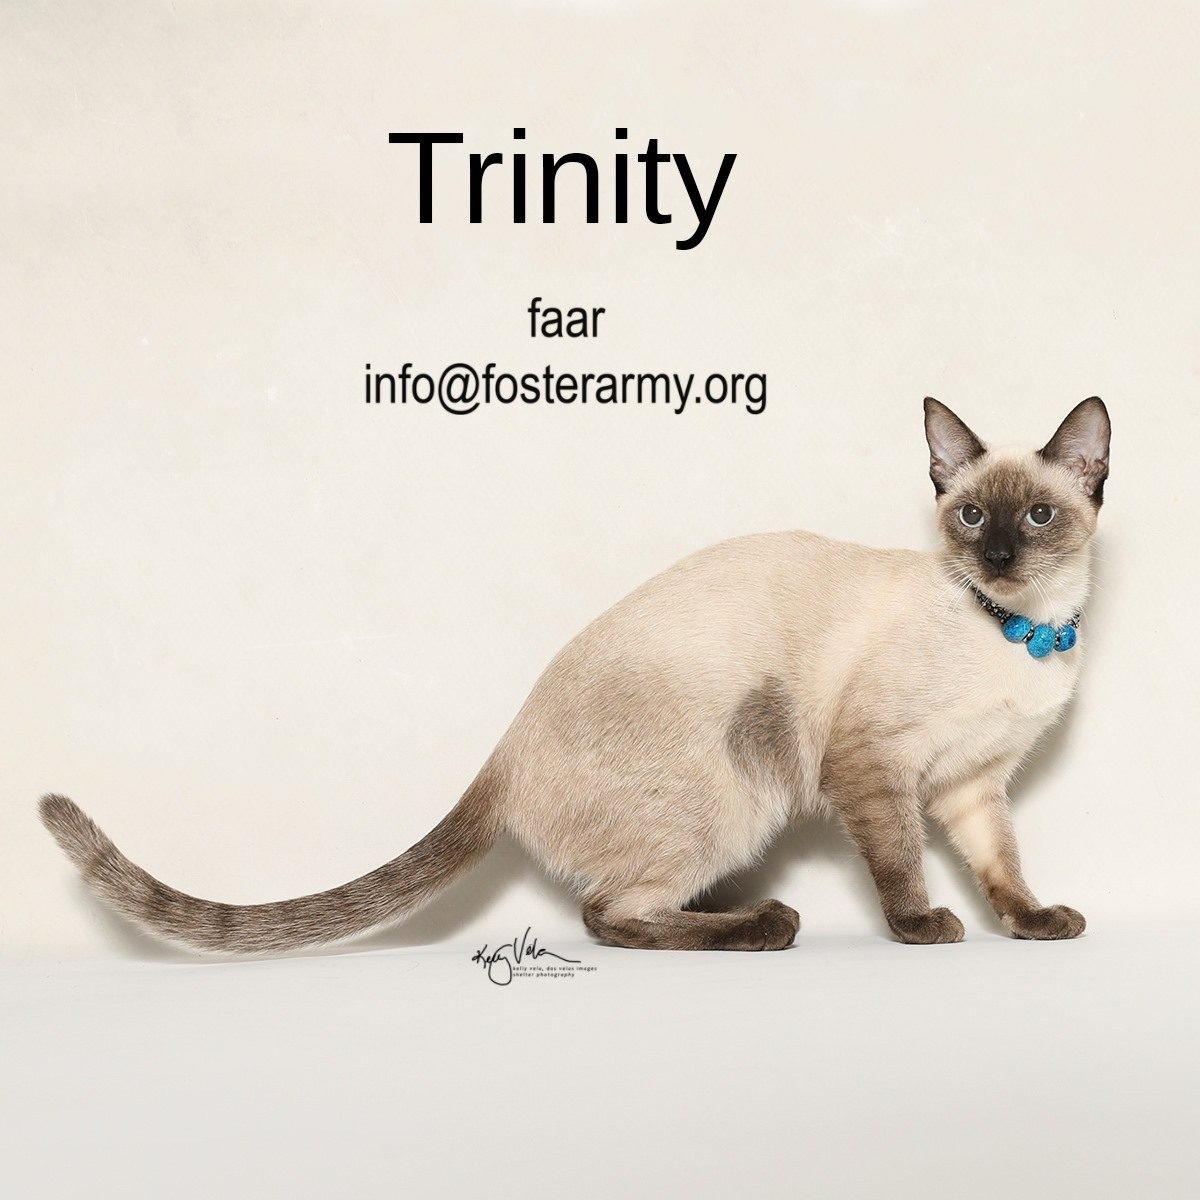 Adopt Trinity the most beautiful kitty with Foster Army Animal Rescue in Riverside, CA